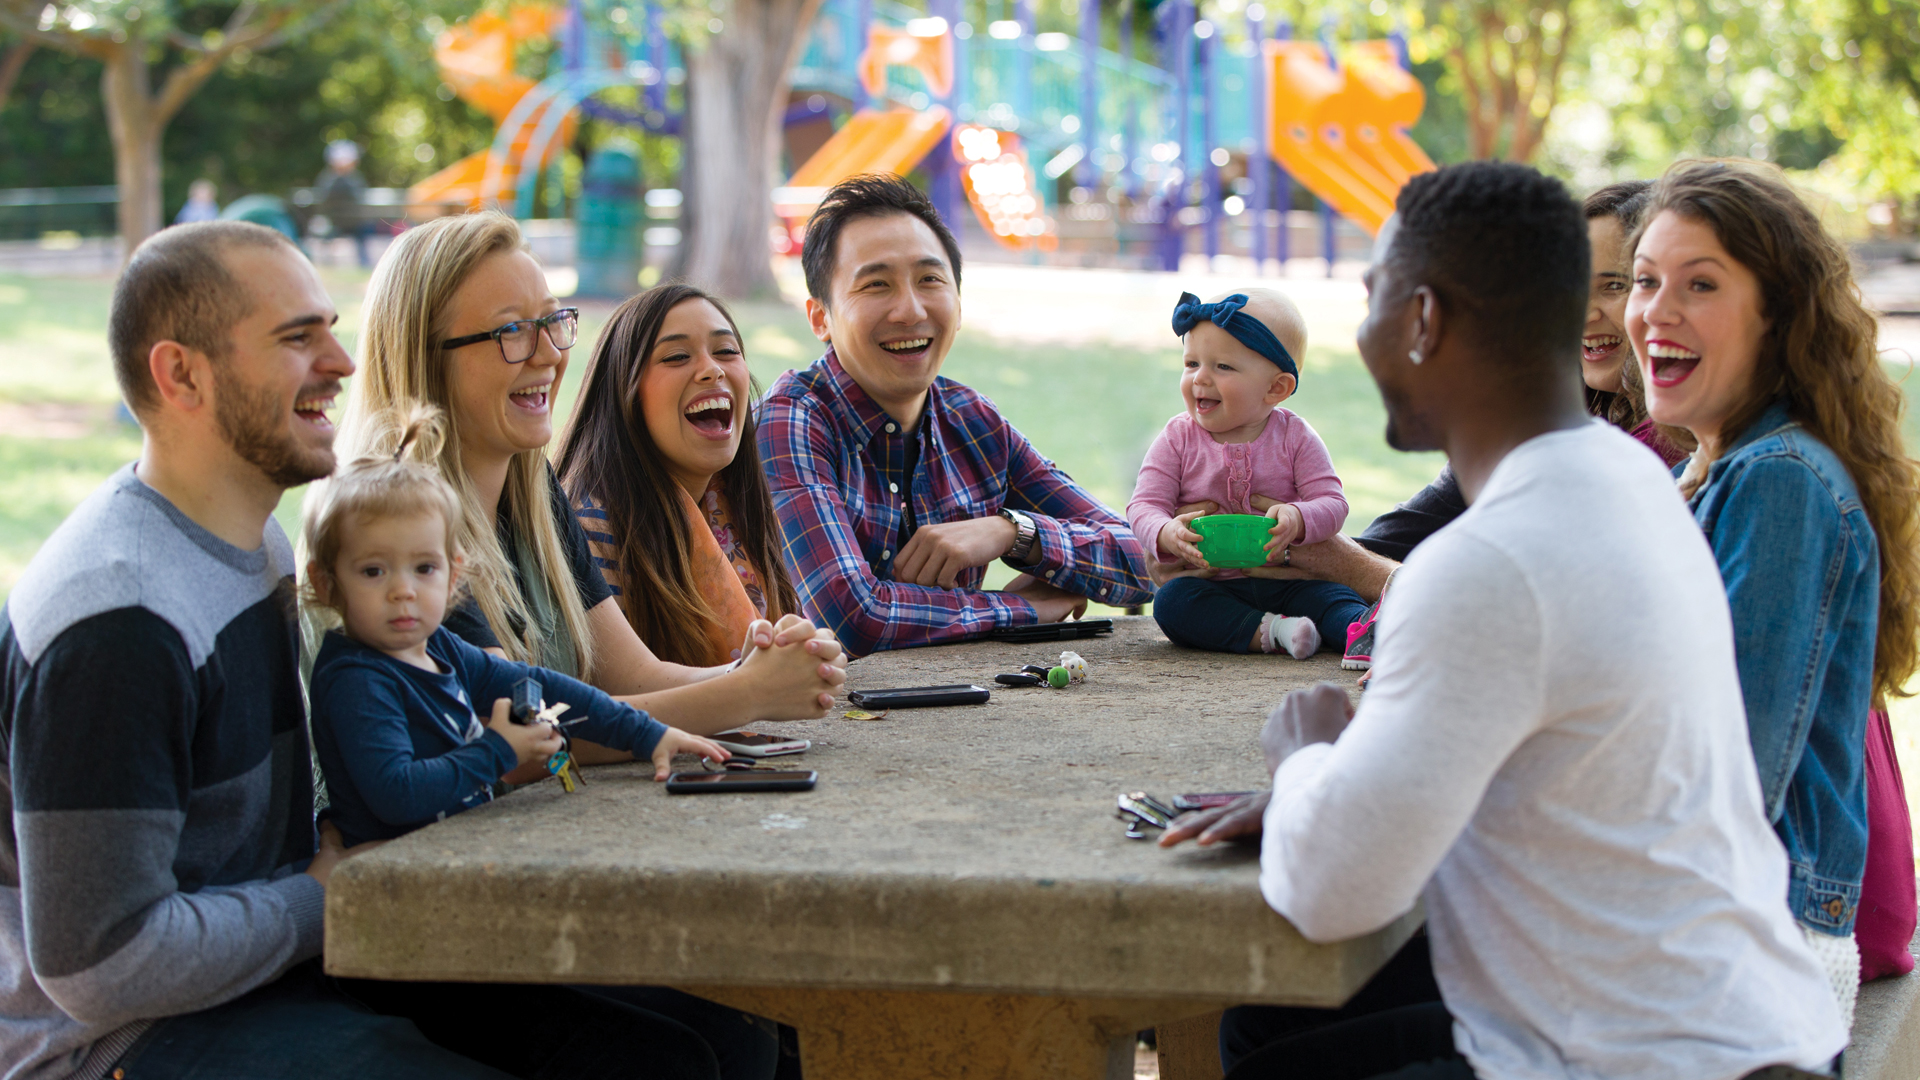 Here S How To Fill Your Lifegroup With People